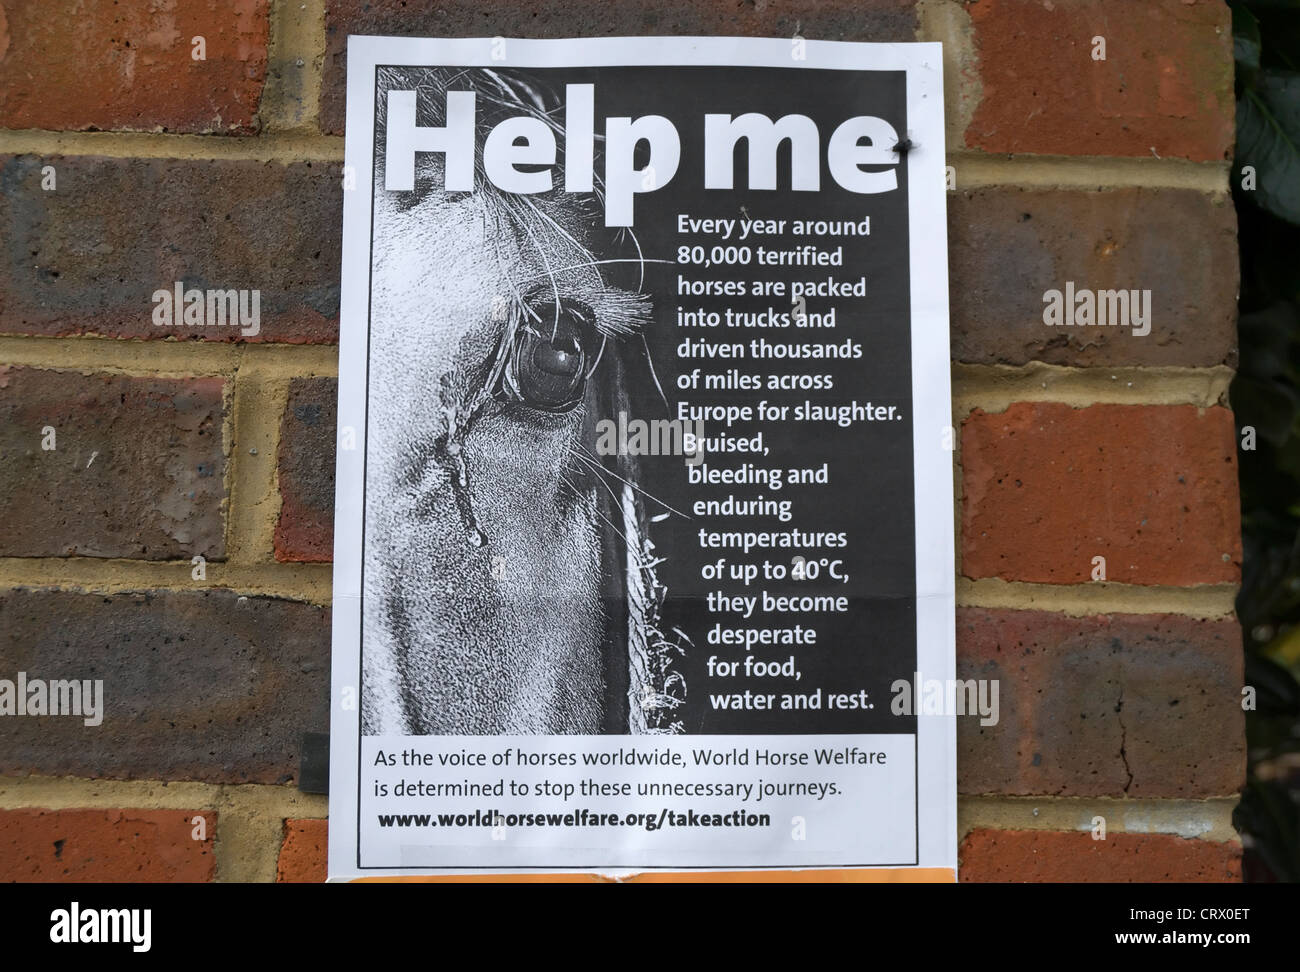 help me poster from world horse welfare describing the treatment of horses when transported in europe - Stock Image